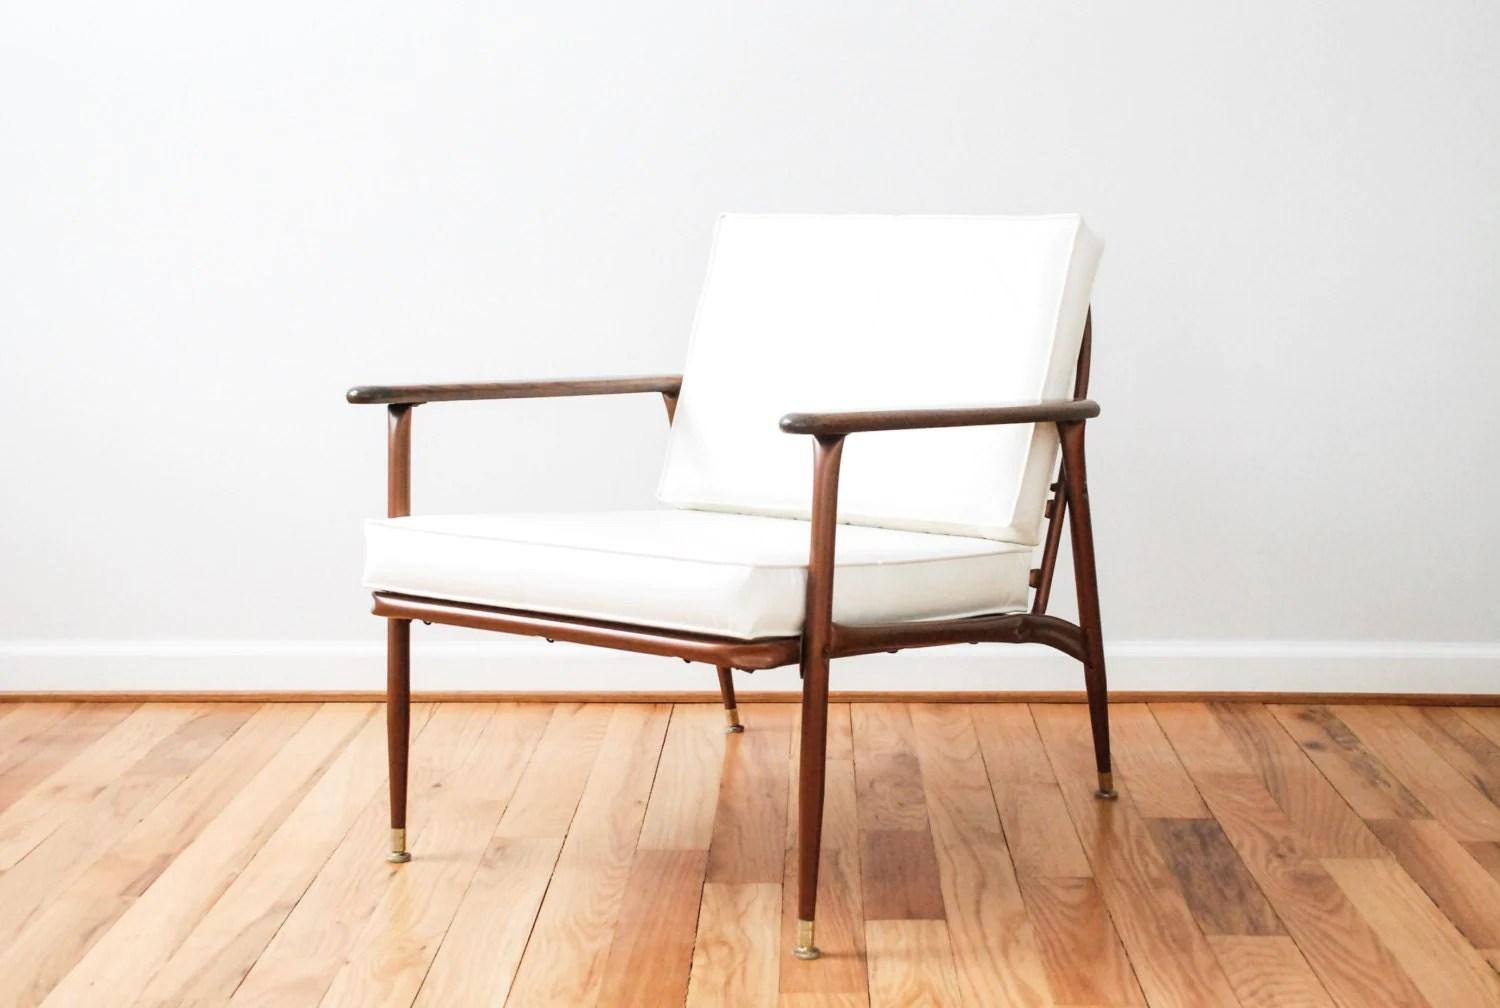 Midcentury Chairs Mid Century Chair Danish Chair Mid Century Lounge Chair